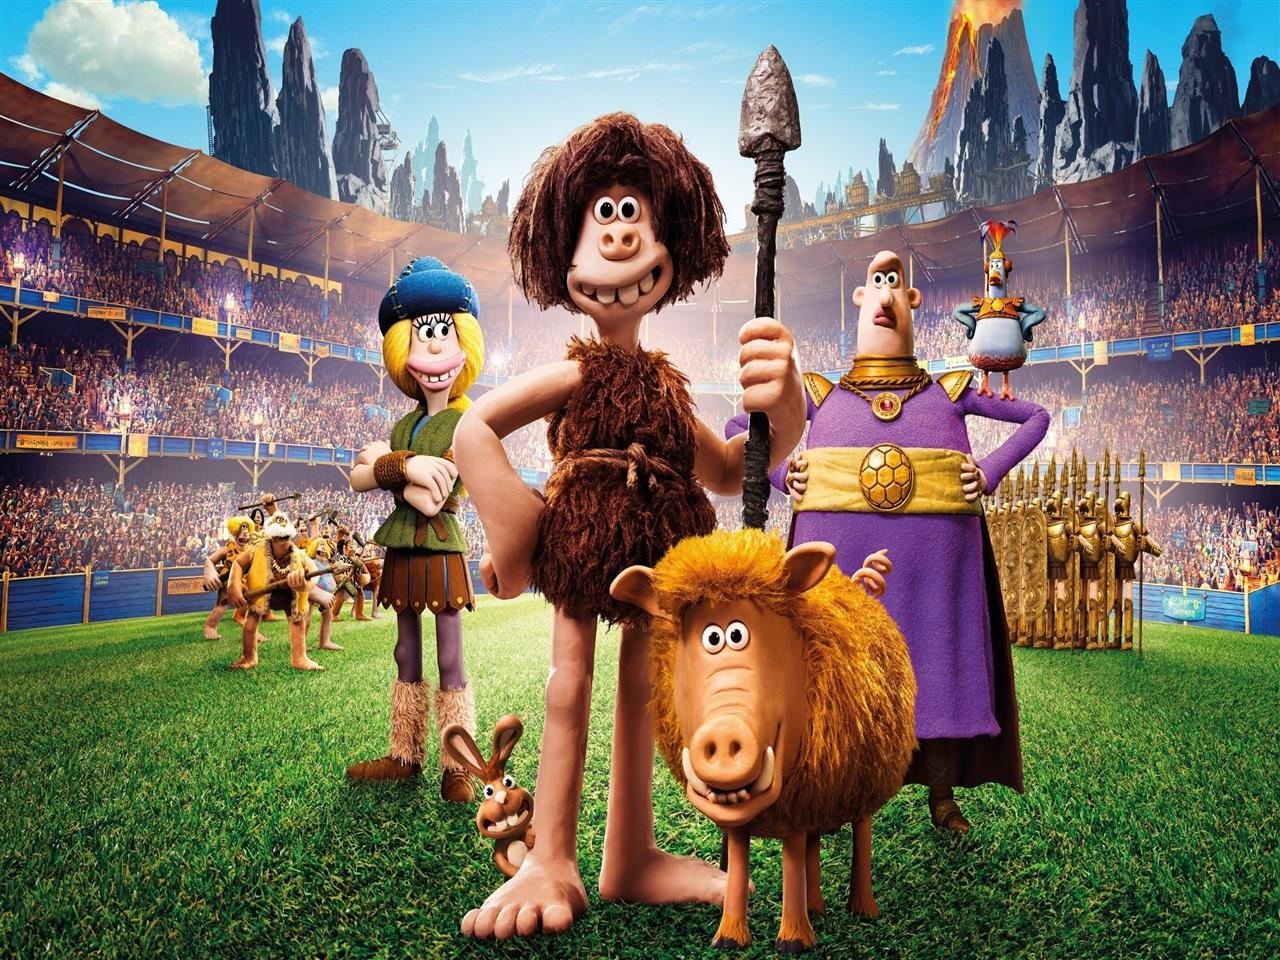 1280x960 Dug in Early Man Film HD Wallpapers